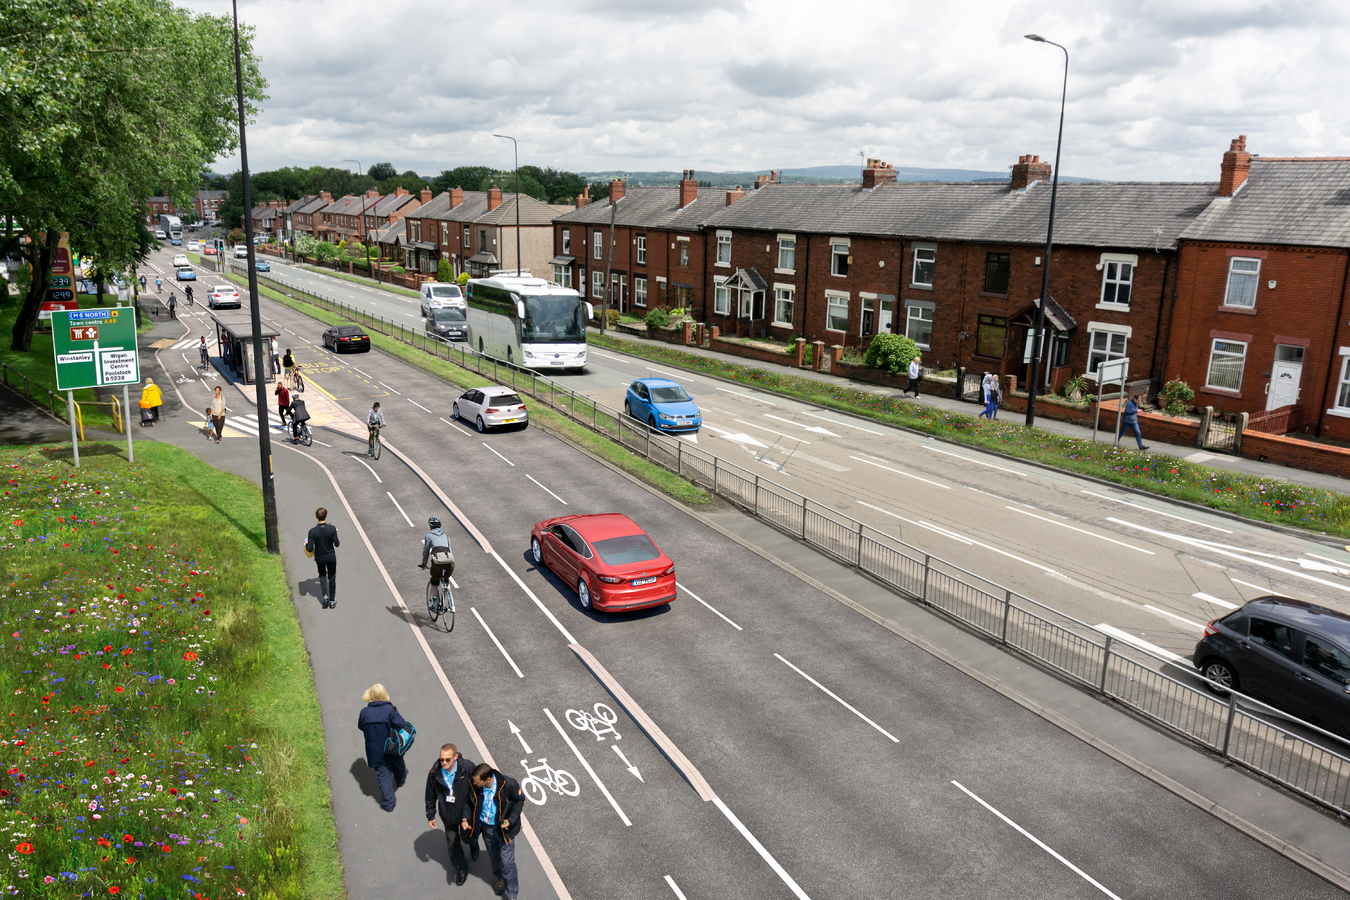 Cycle lane proposal Warrington Road, Wigan